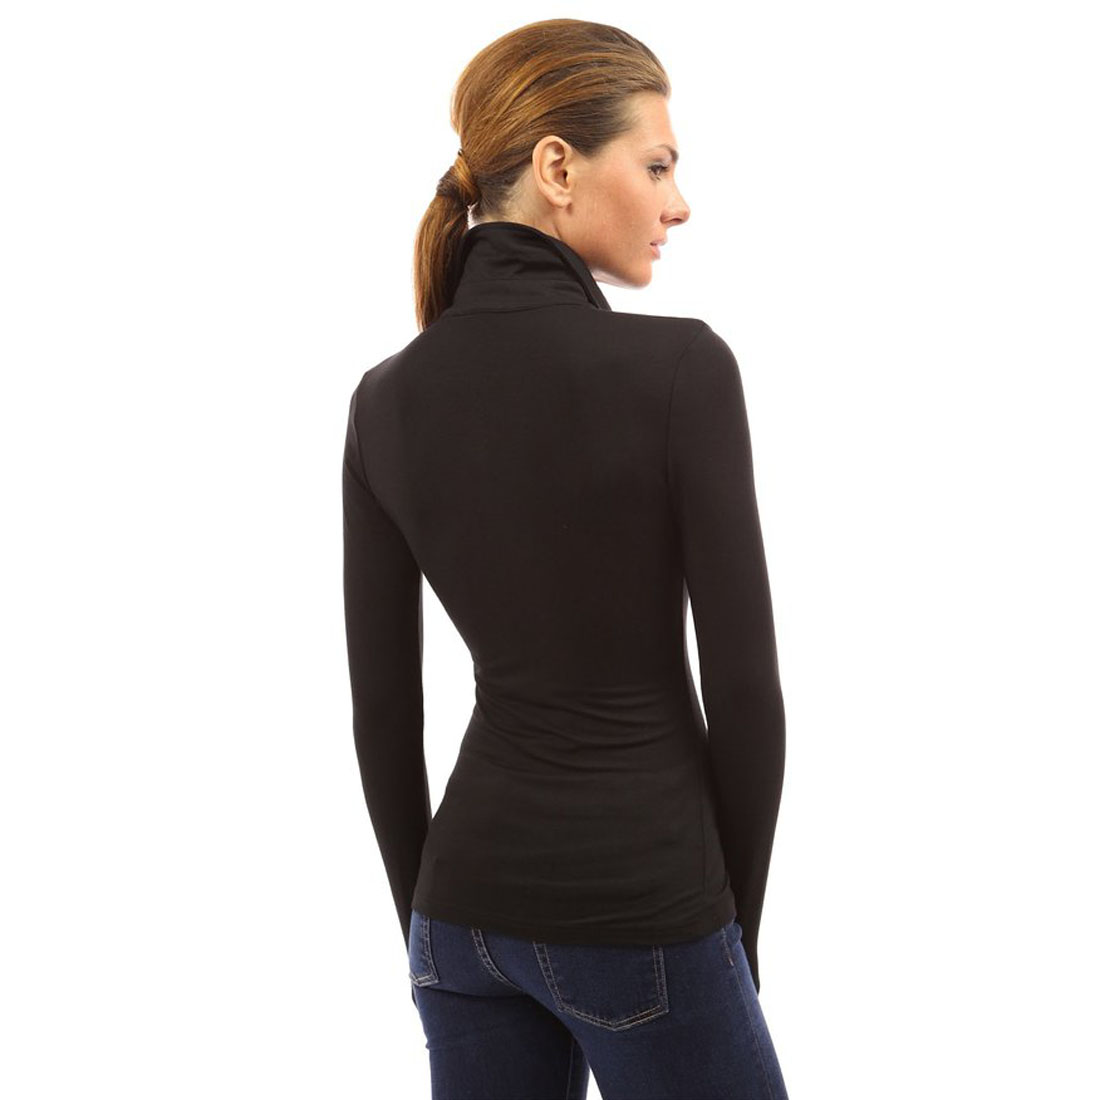 Womens Shirt Short In Front Long In Back